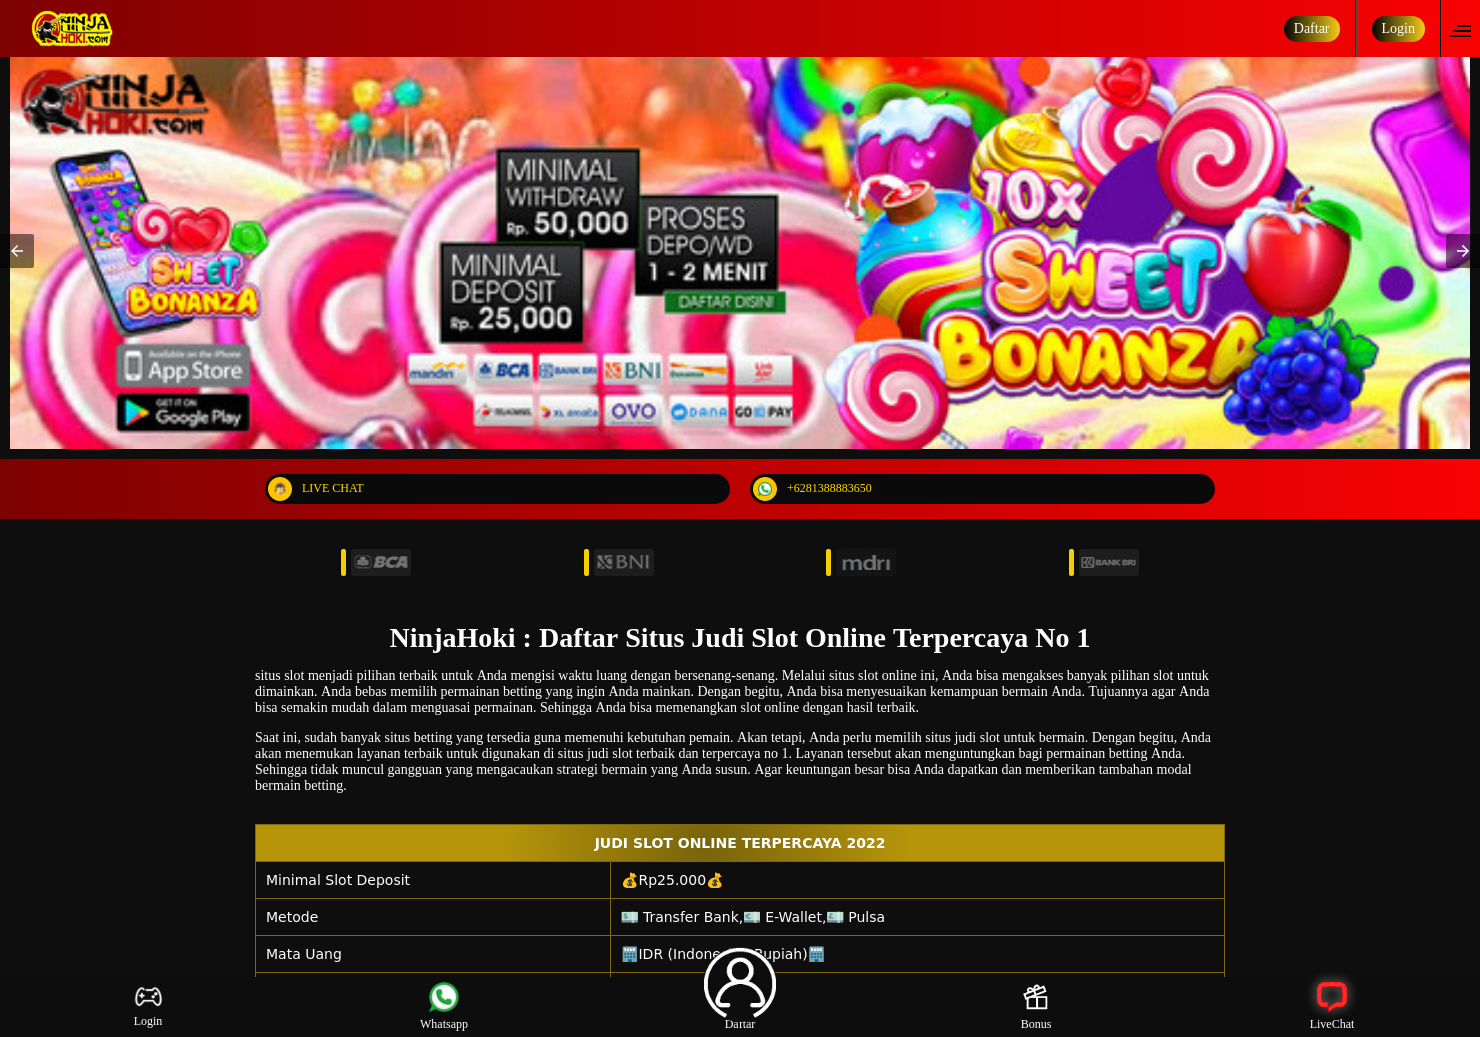 Voice Channels by Quill